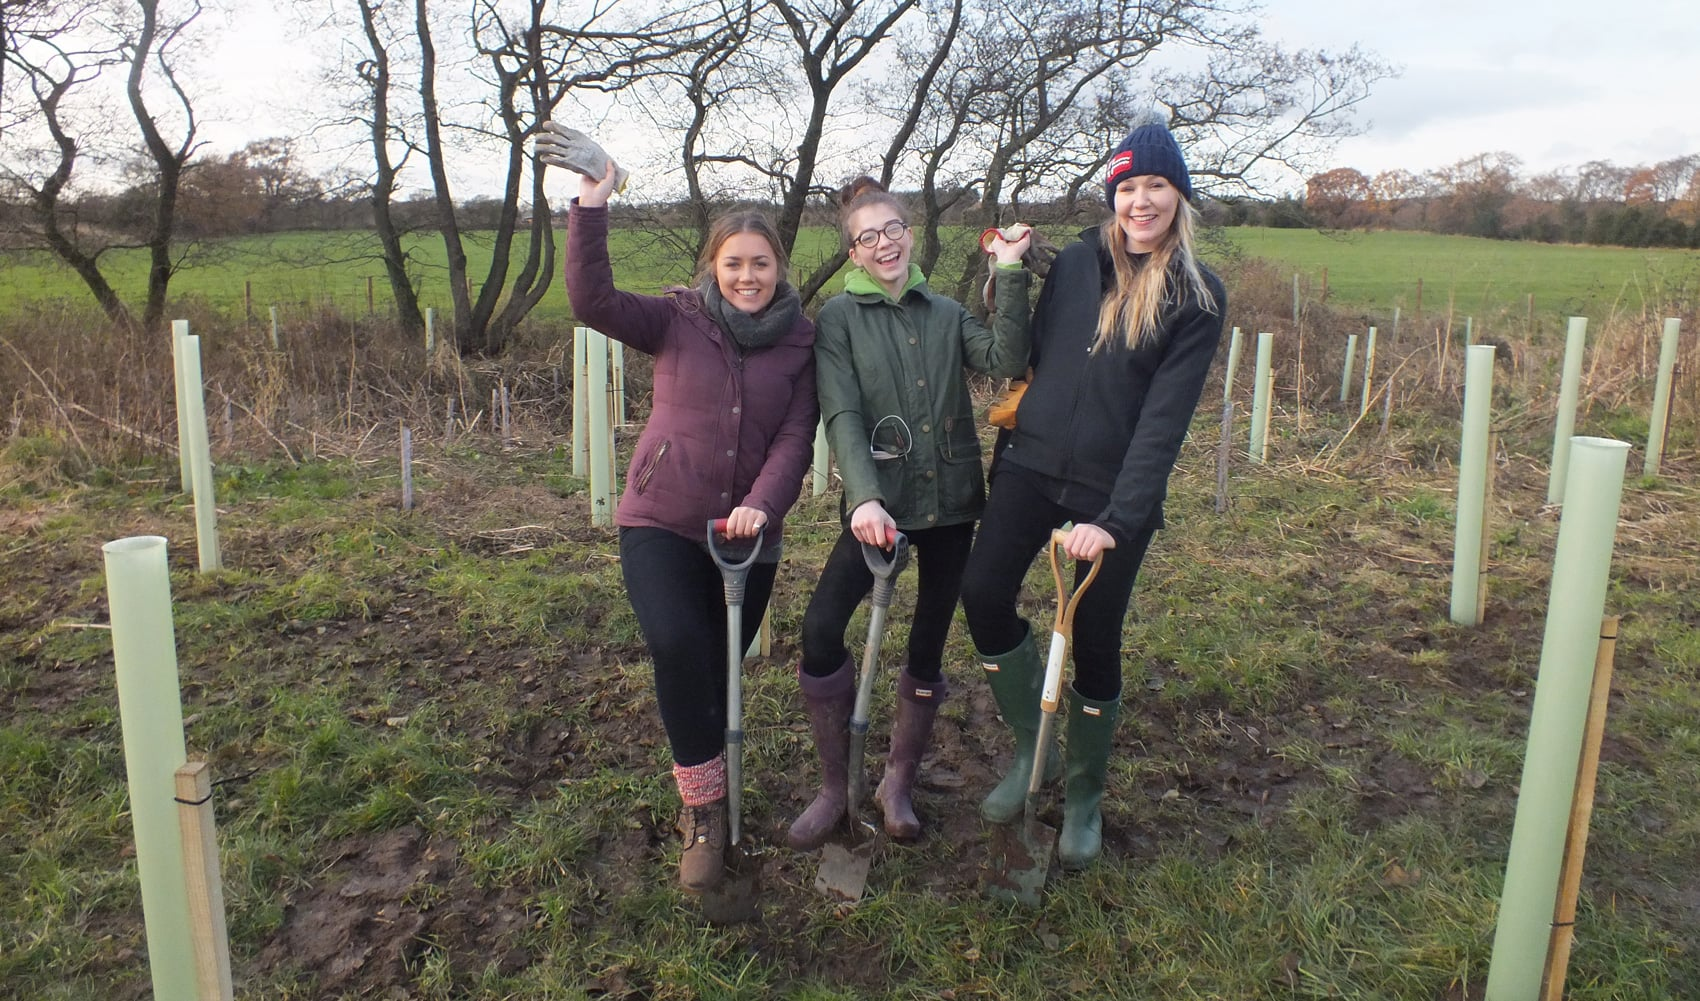 9000 reasons to thank our volunteers this winter